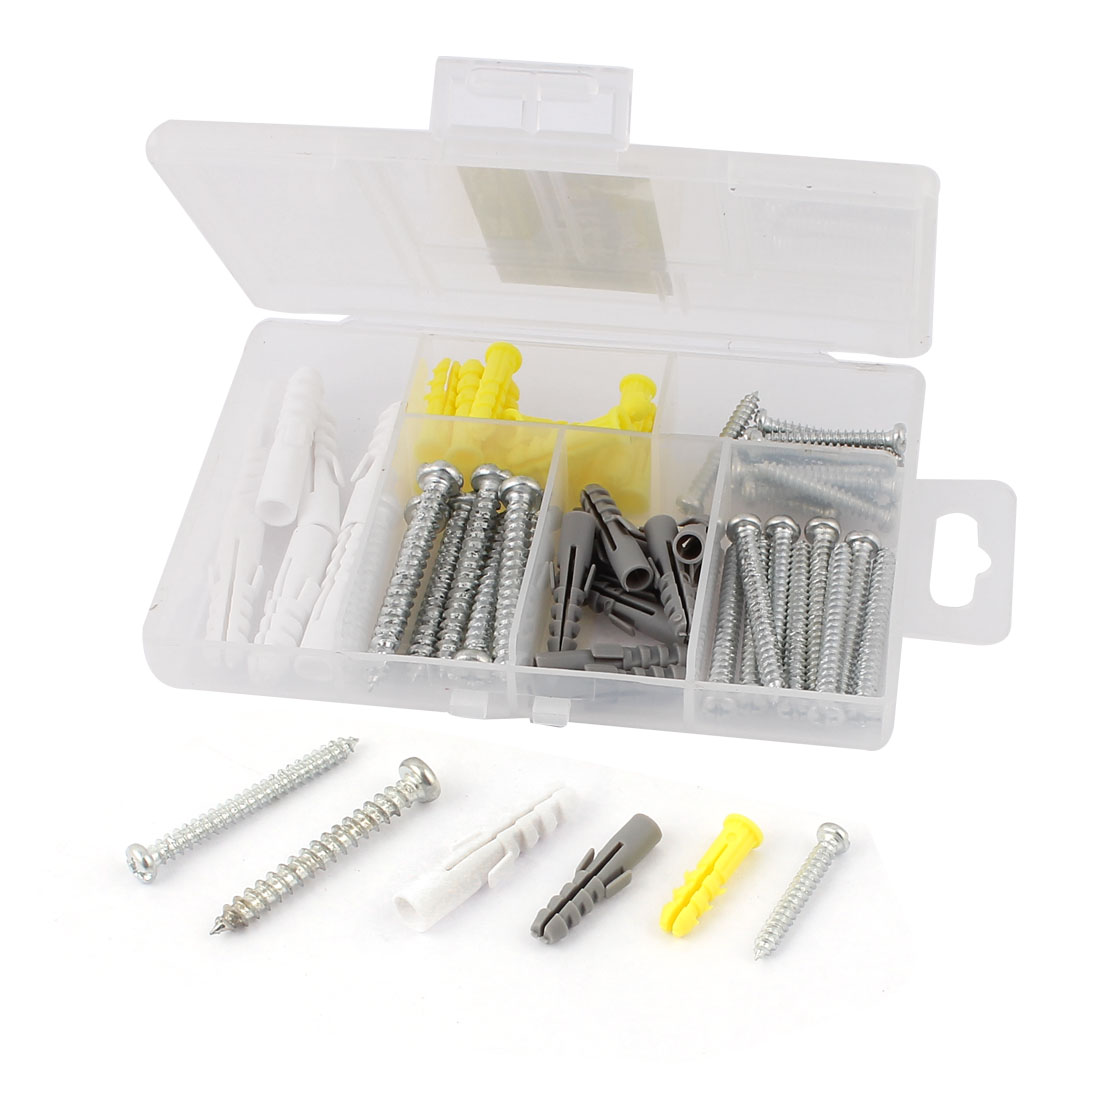 58 In 1 Expansion Nails Long Cross Head Screws Household Fastener Set